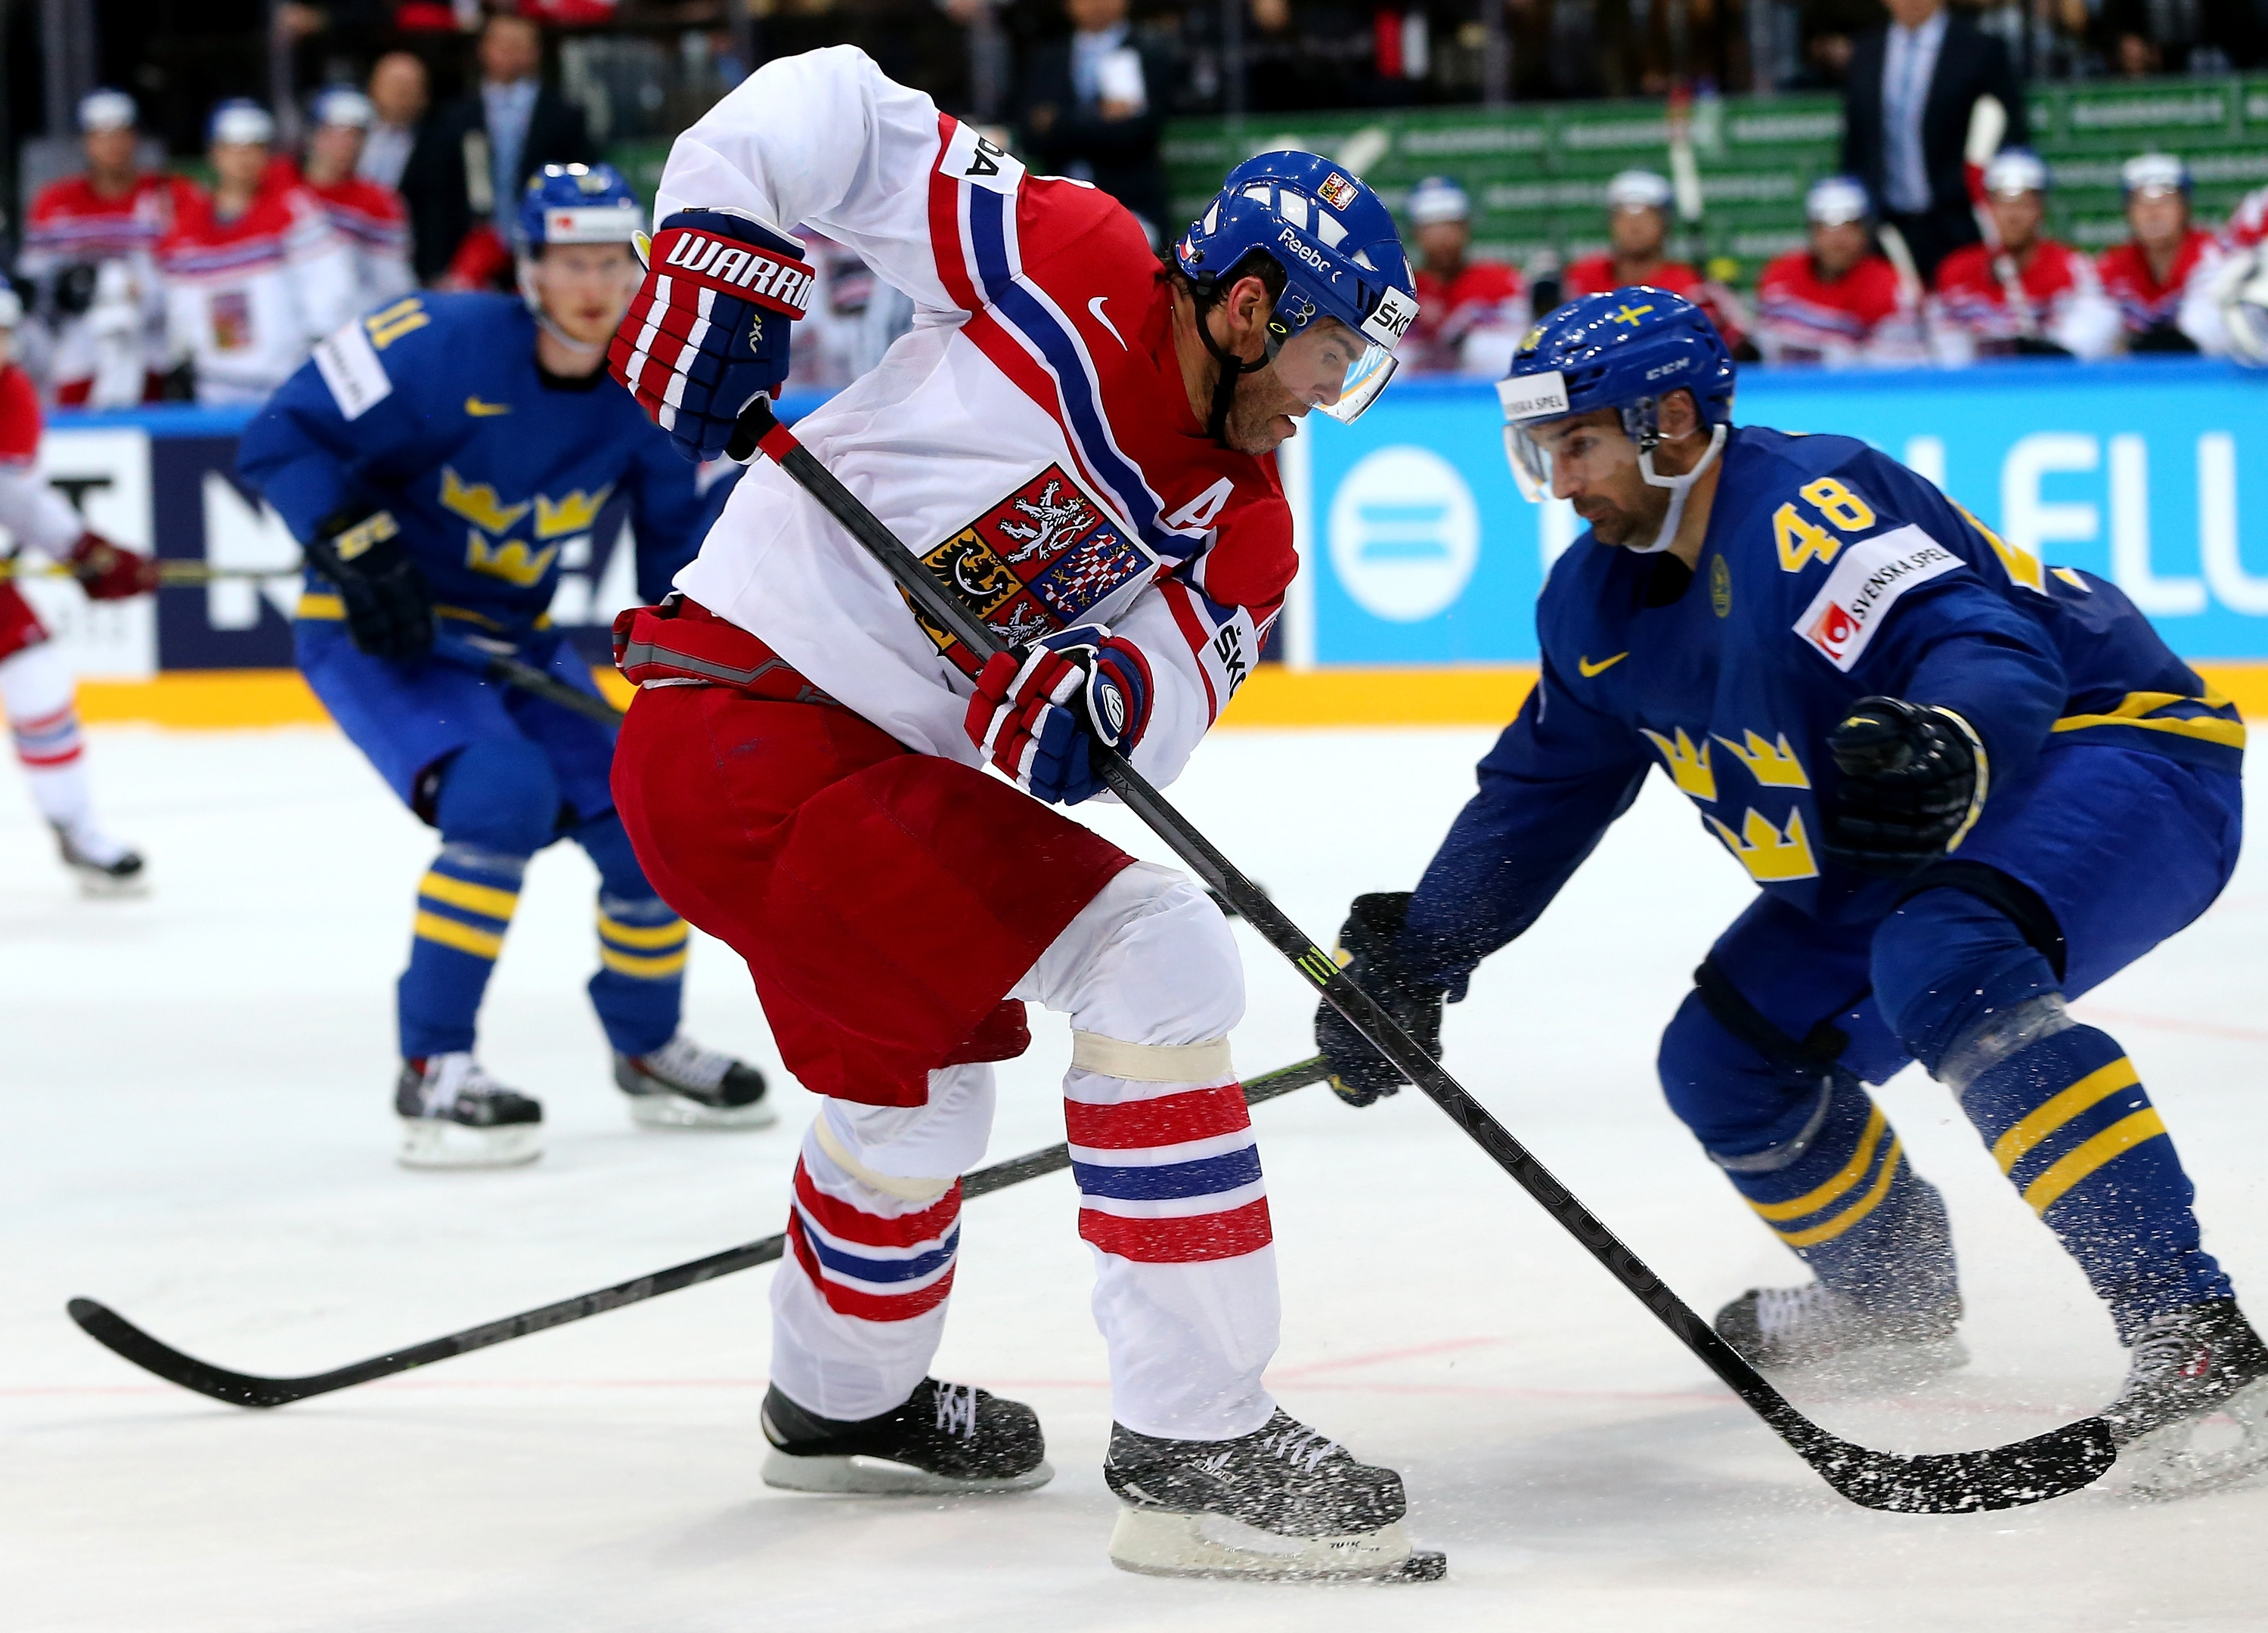 hockey czech republic sweden online dating Team usa edged out a 3-2 win against the czech republic sending them to the semi-final of the 2018 iihf ice hockey world championship.